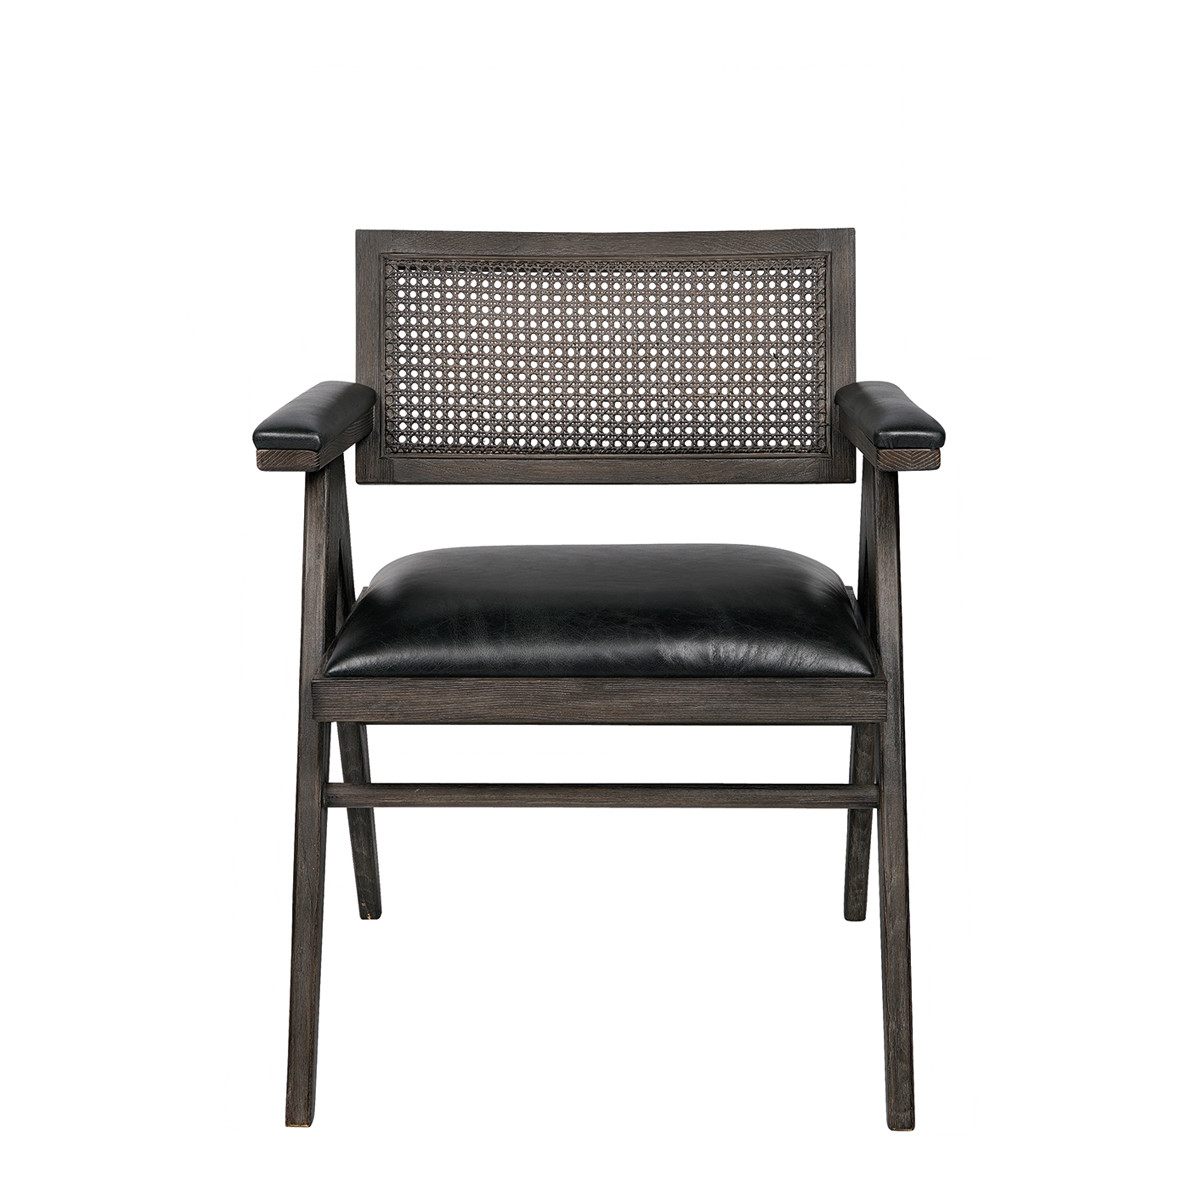 COLBY RATTAN LOW CHAIR